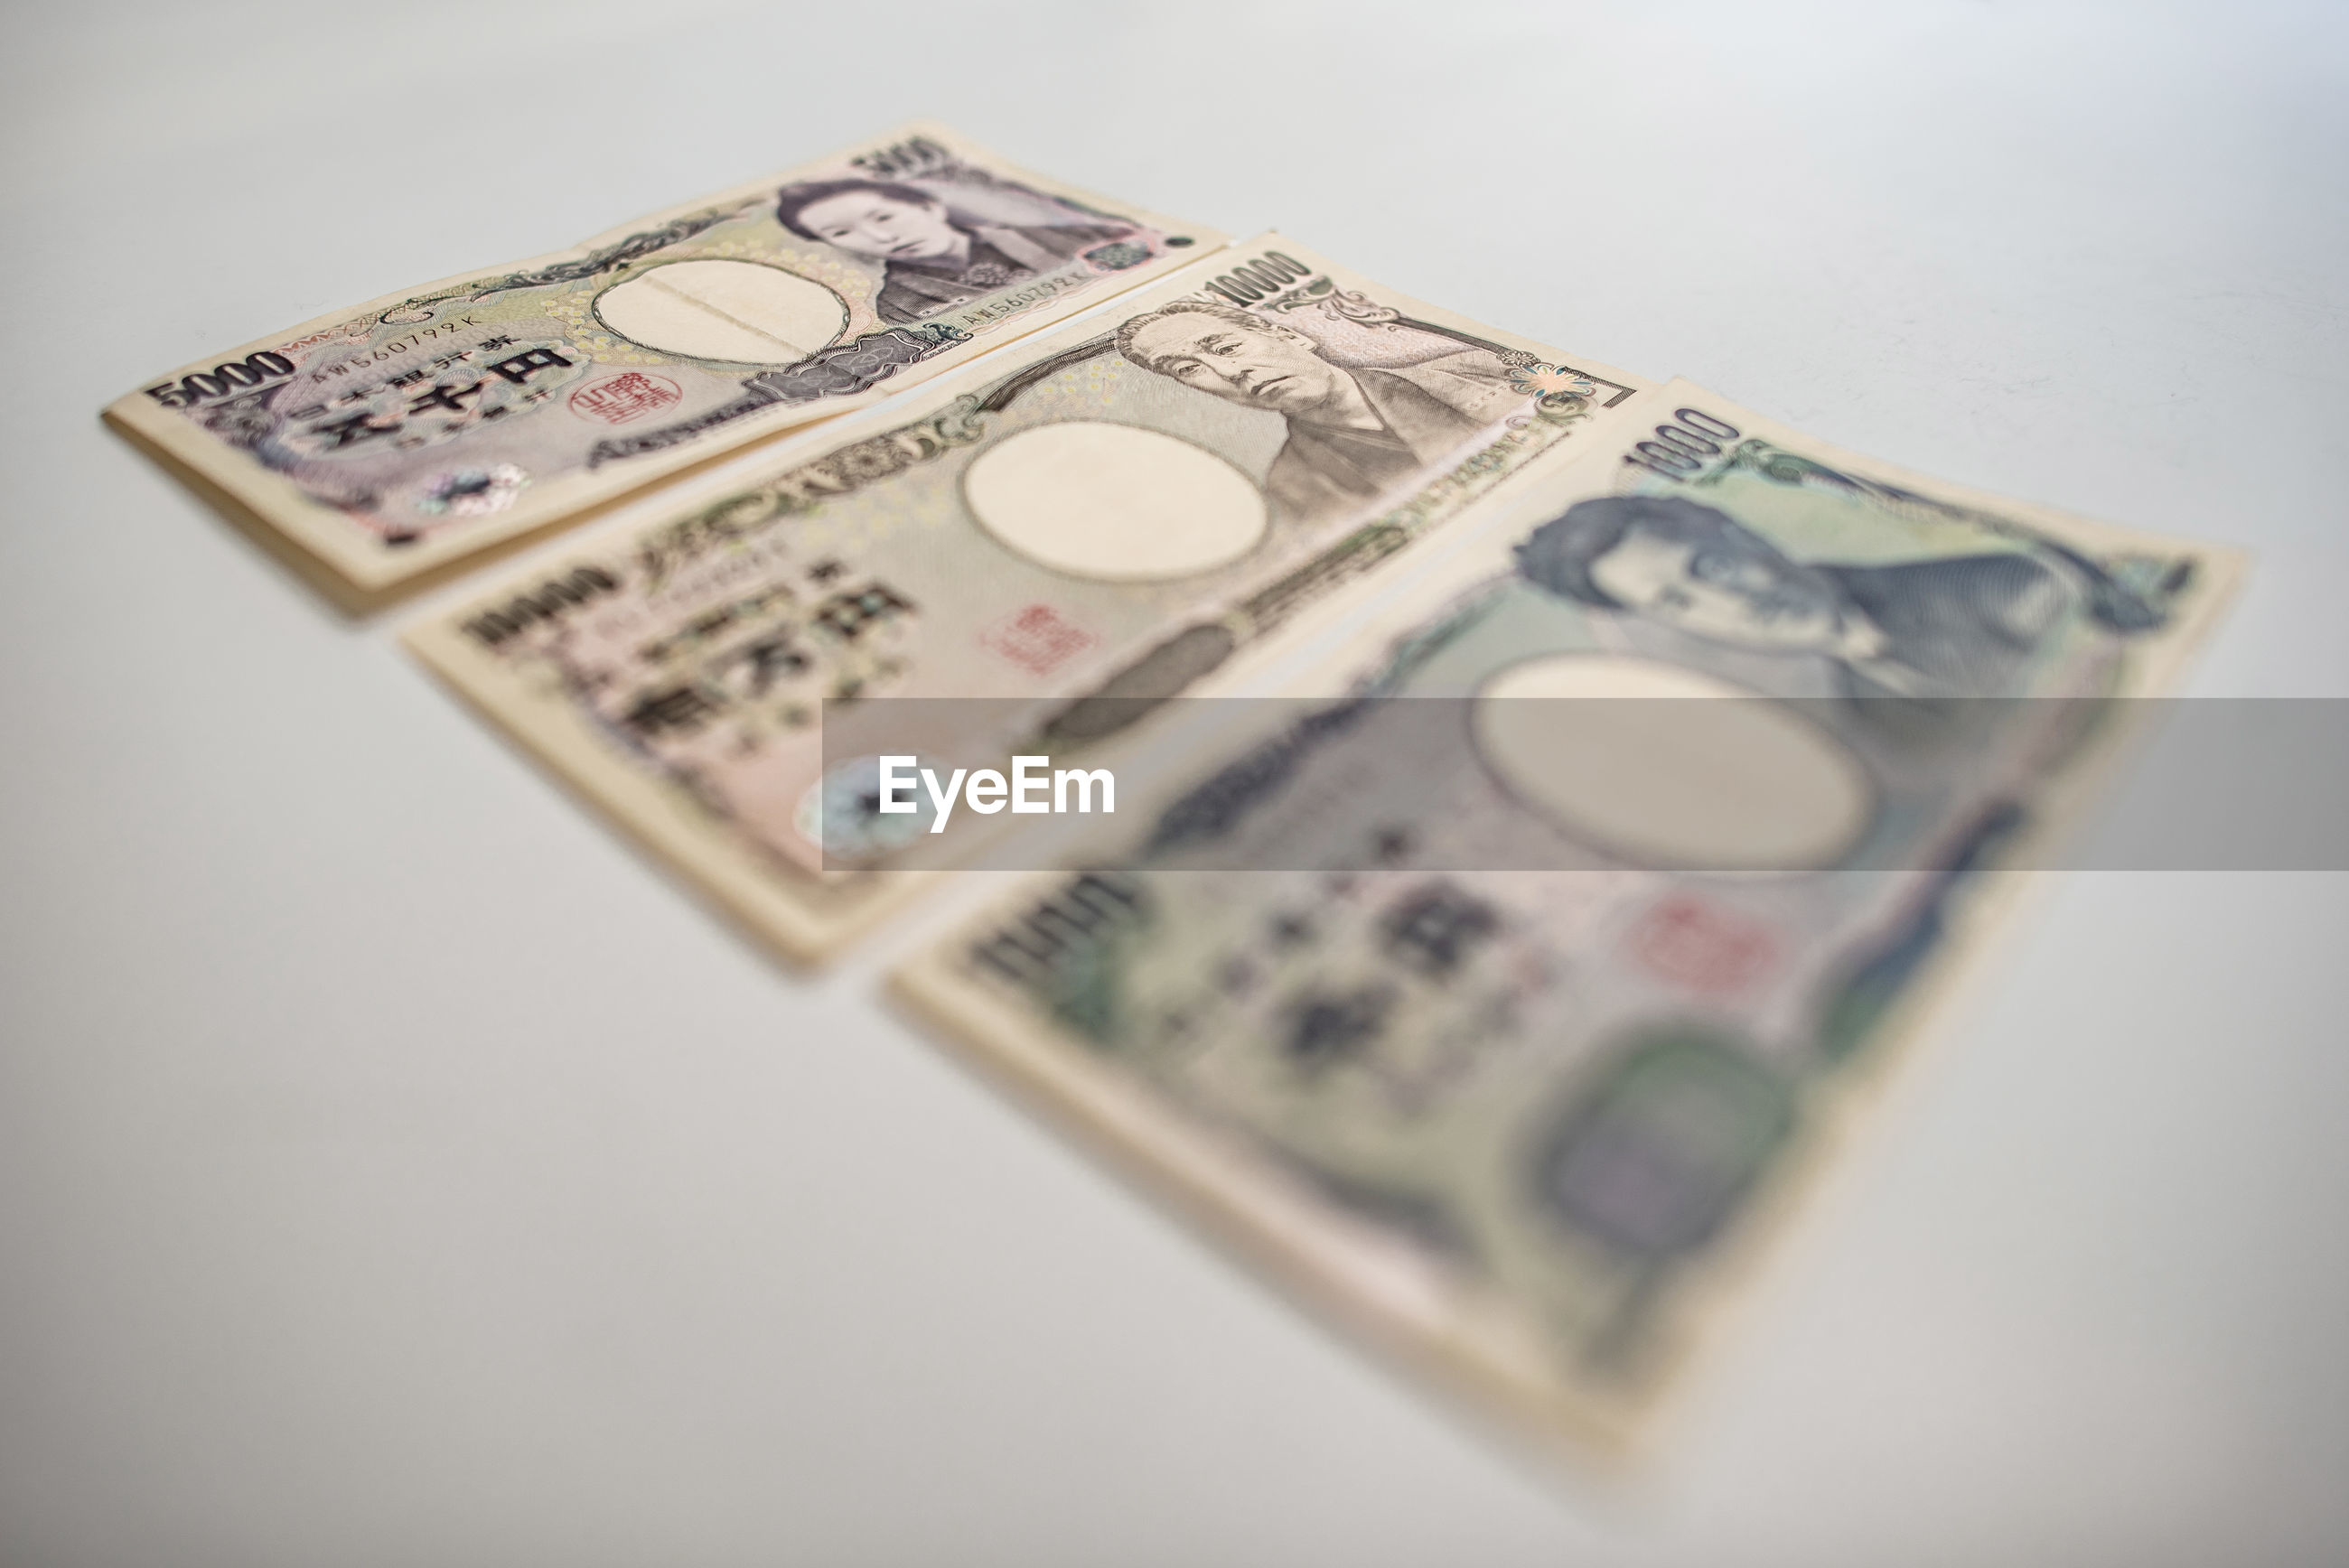 Close-up of paper currencies on white background